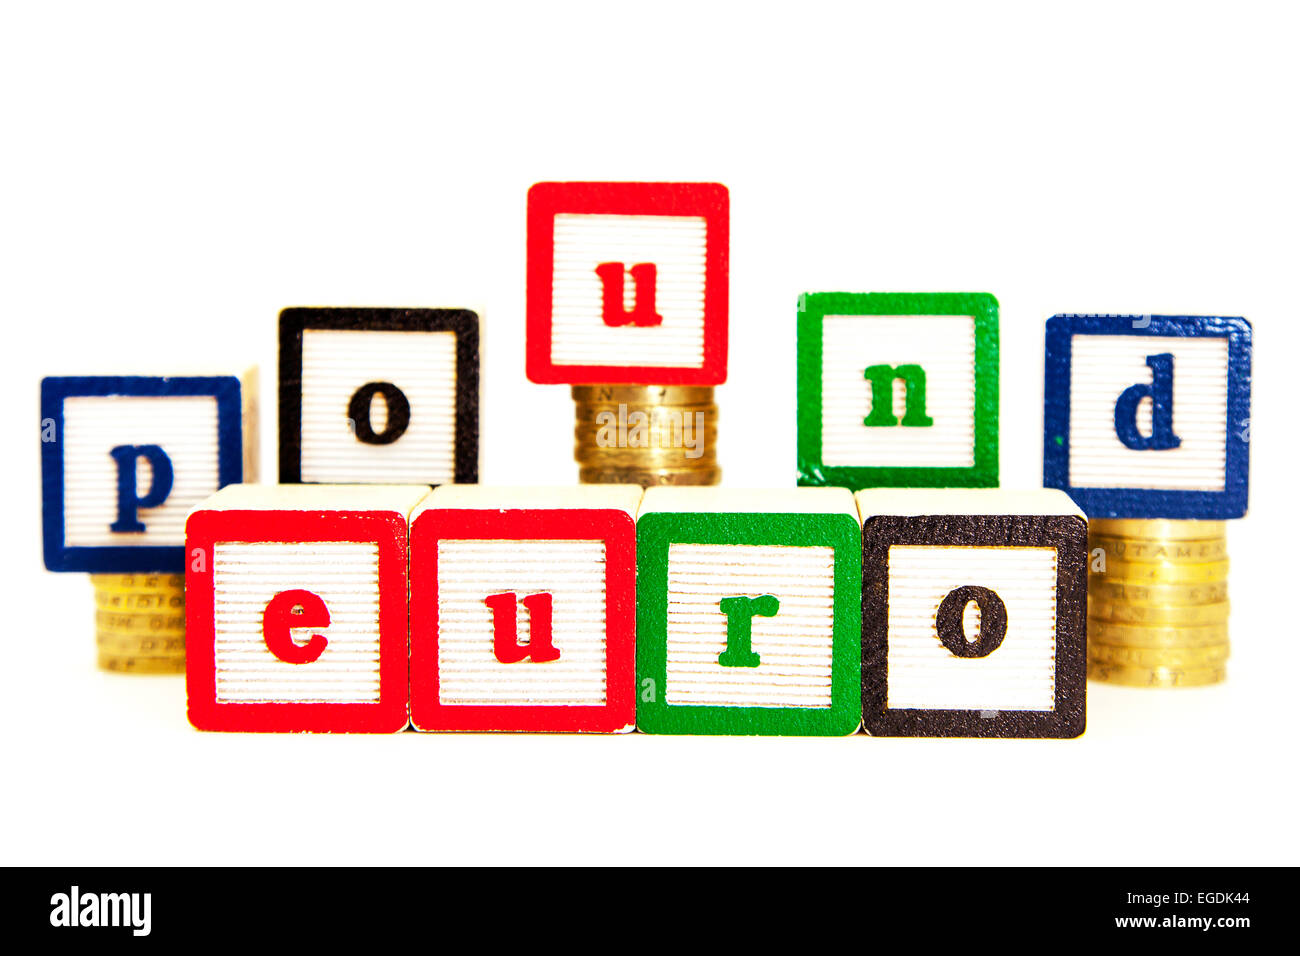 Pound vs euro currency exchange rate rates currencies pounds euros cutout cut out white background copy space - Stock Image